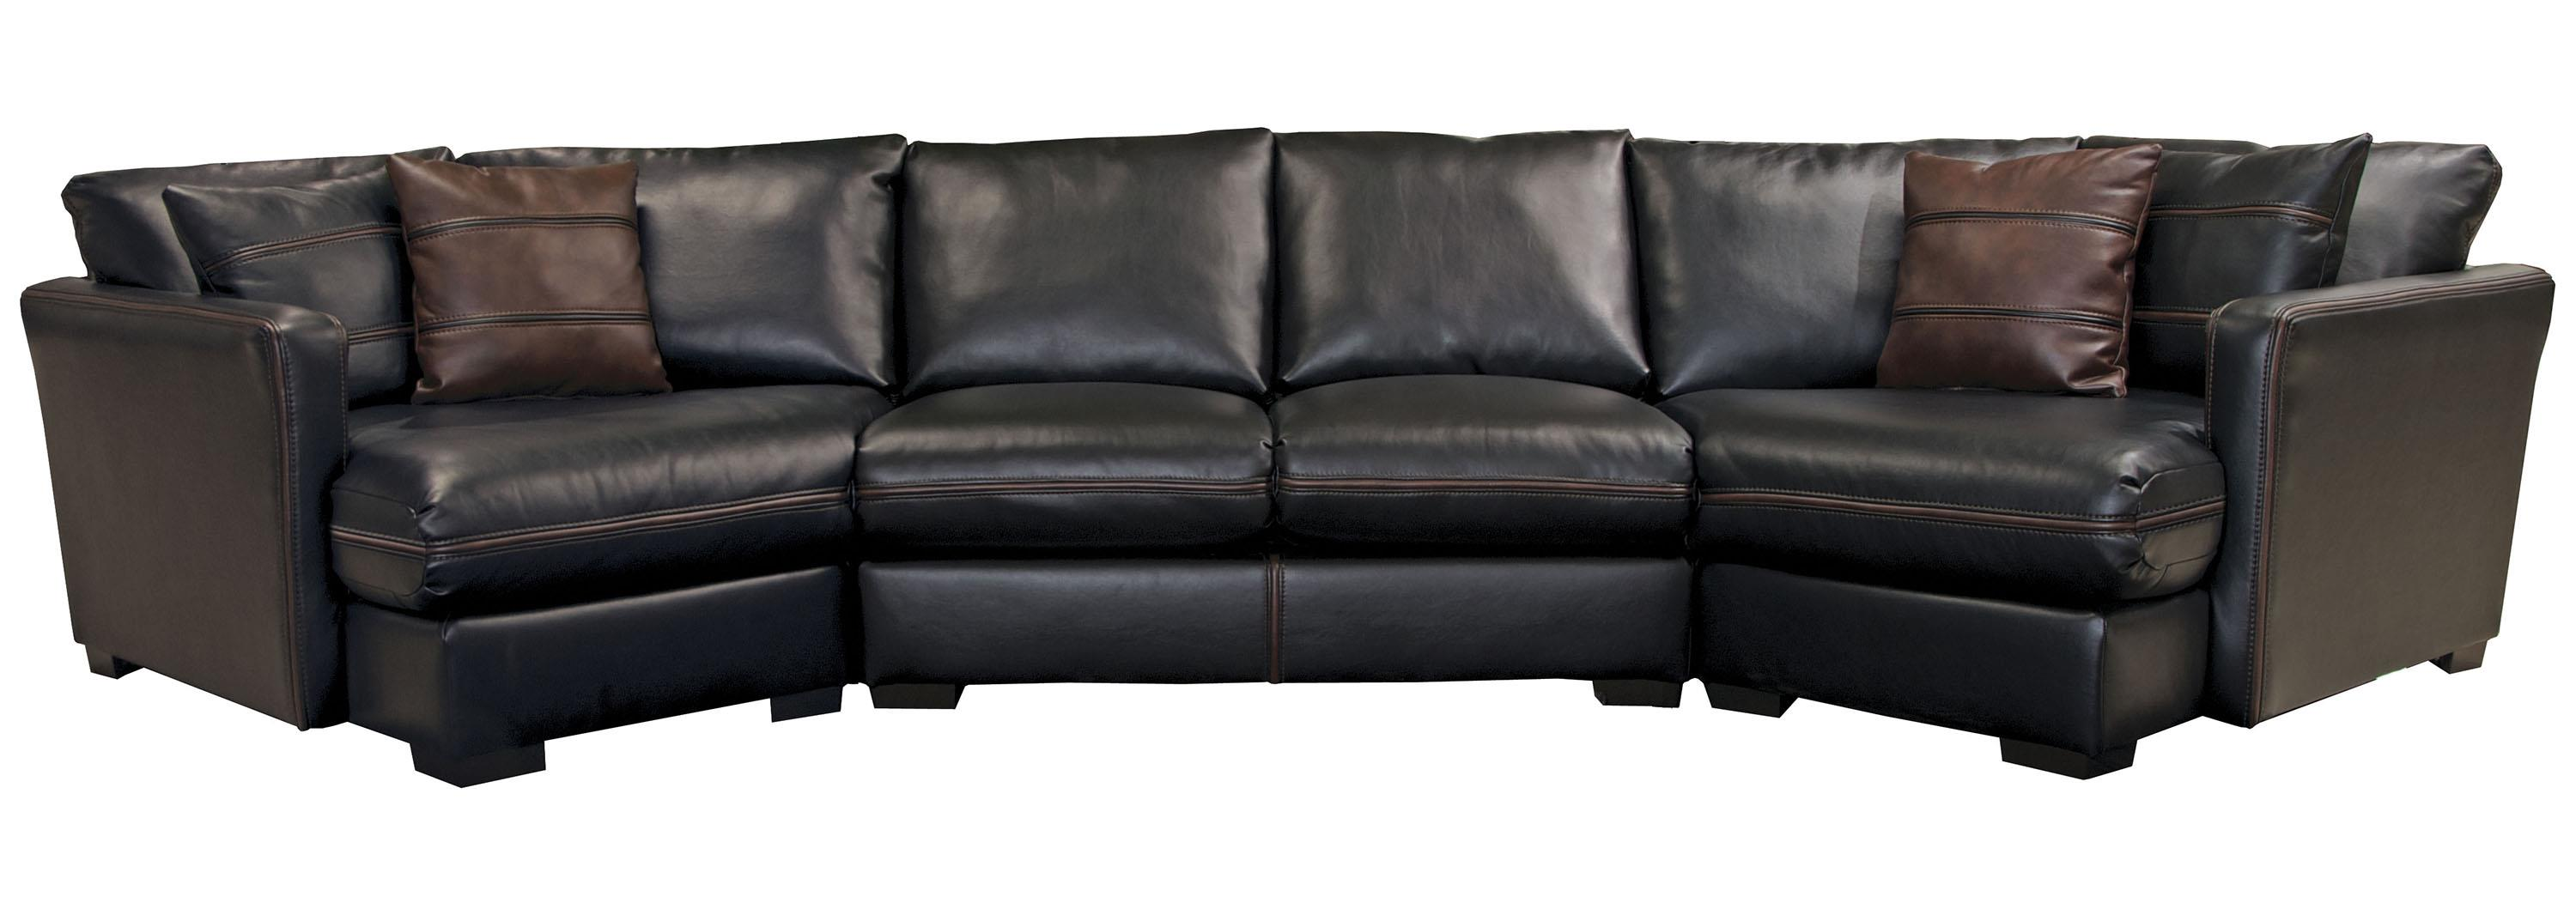 Jackson furniture tucker four seat sectional sofa lapeer for Jackson furniture sectional sofa